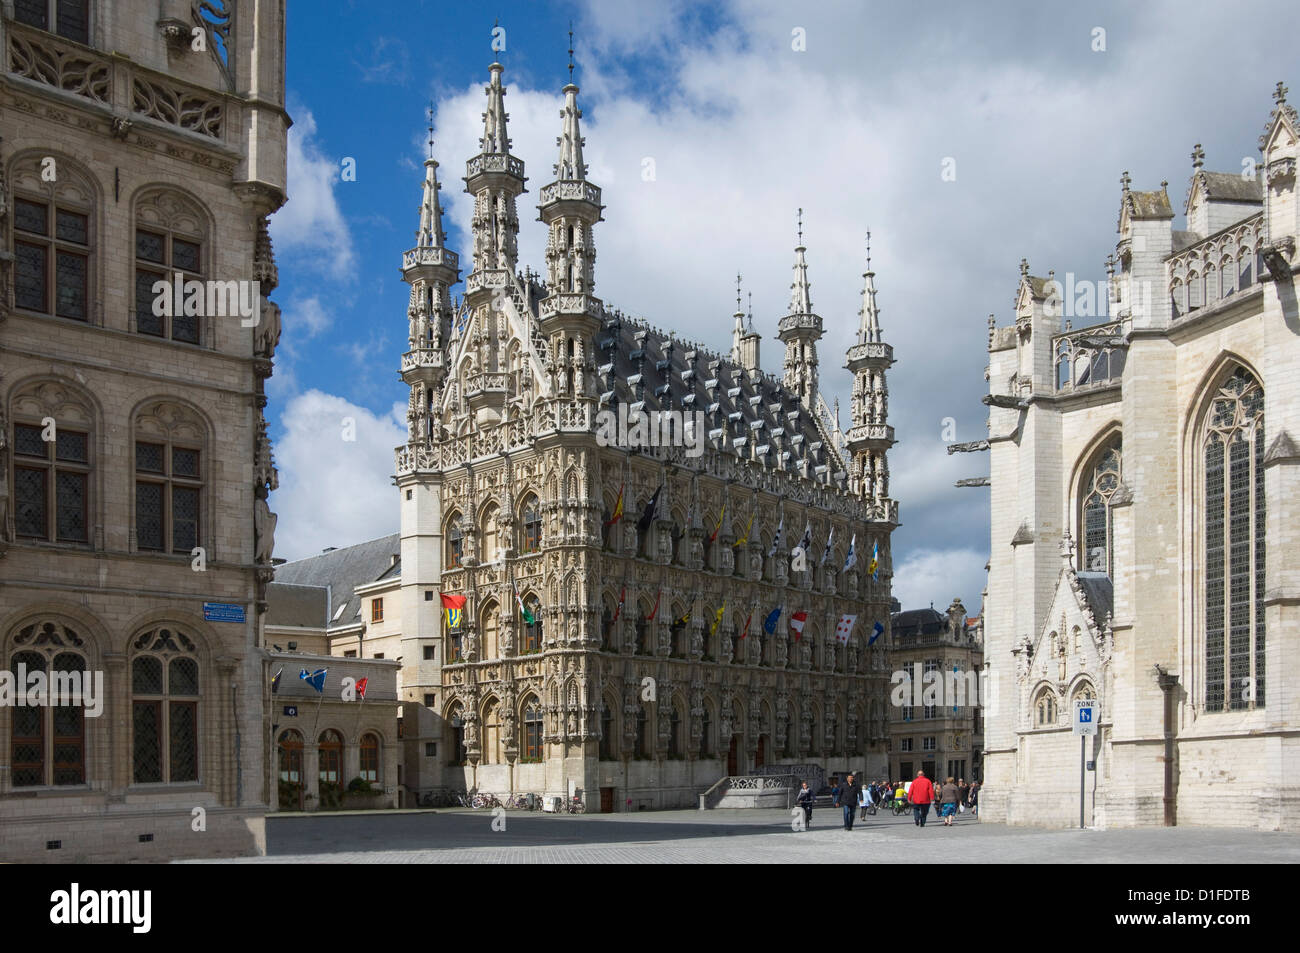 The 15th century late Gothic Town Hall in the Grote Markt, Leuven, Belgium, Europe - Stock Image